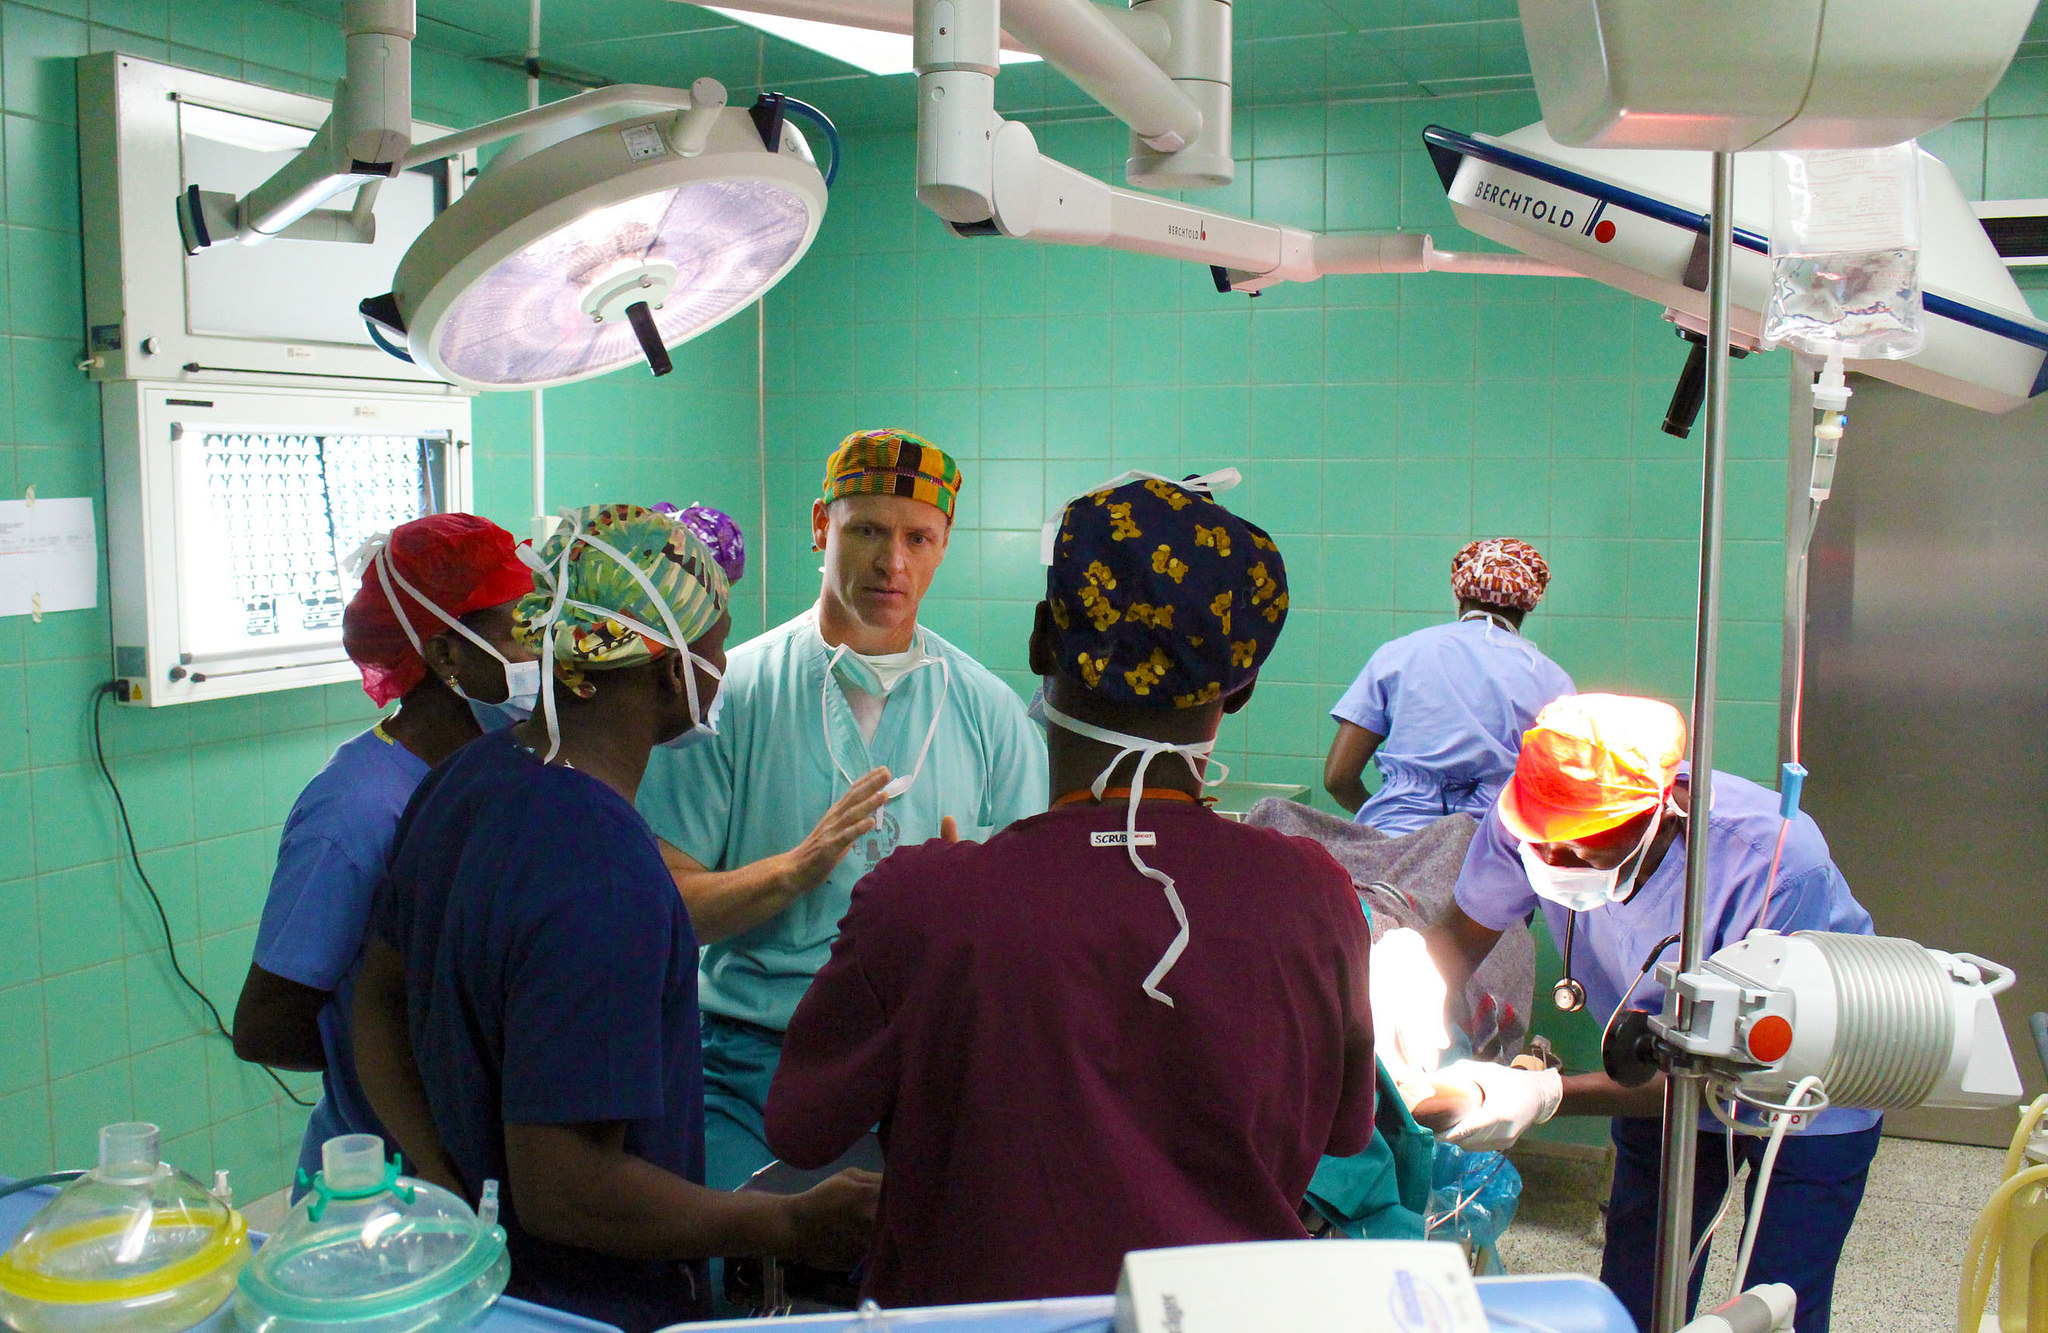 Lt. Col. Sean Burke, an anesthesia provider with the 30th Medical Brigade, explains procedures with Ghanaian medical personnel prior to a craniotomy at the 37th Military Hospital in Accra, Ghana on Aug. 3, during Medical Readiness Training Exercise (MEDRETE) 15-2. MEDRETE 15-2 is part of a series of exercises designed to build the medical capacity of partner nation militaries in Africa. (U.S. Army Africa photo by Capt. Charles An)